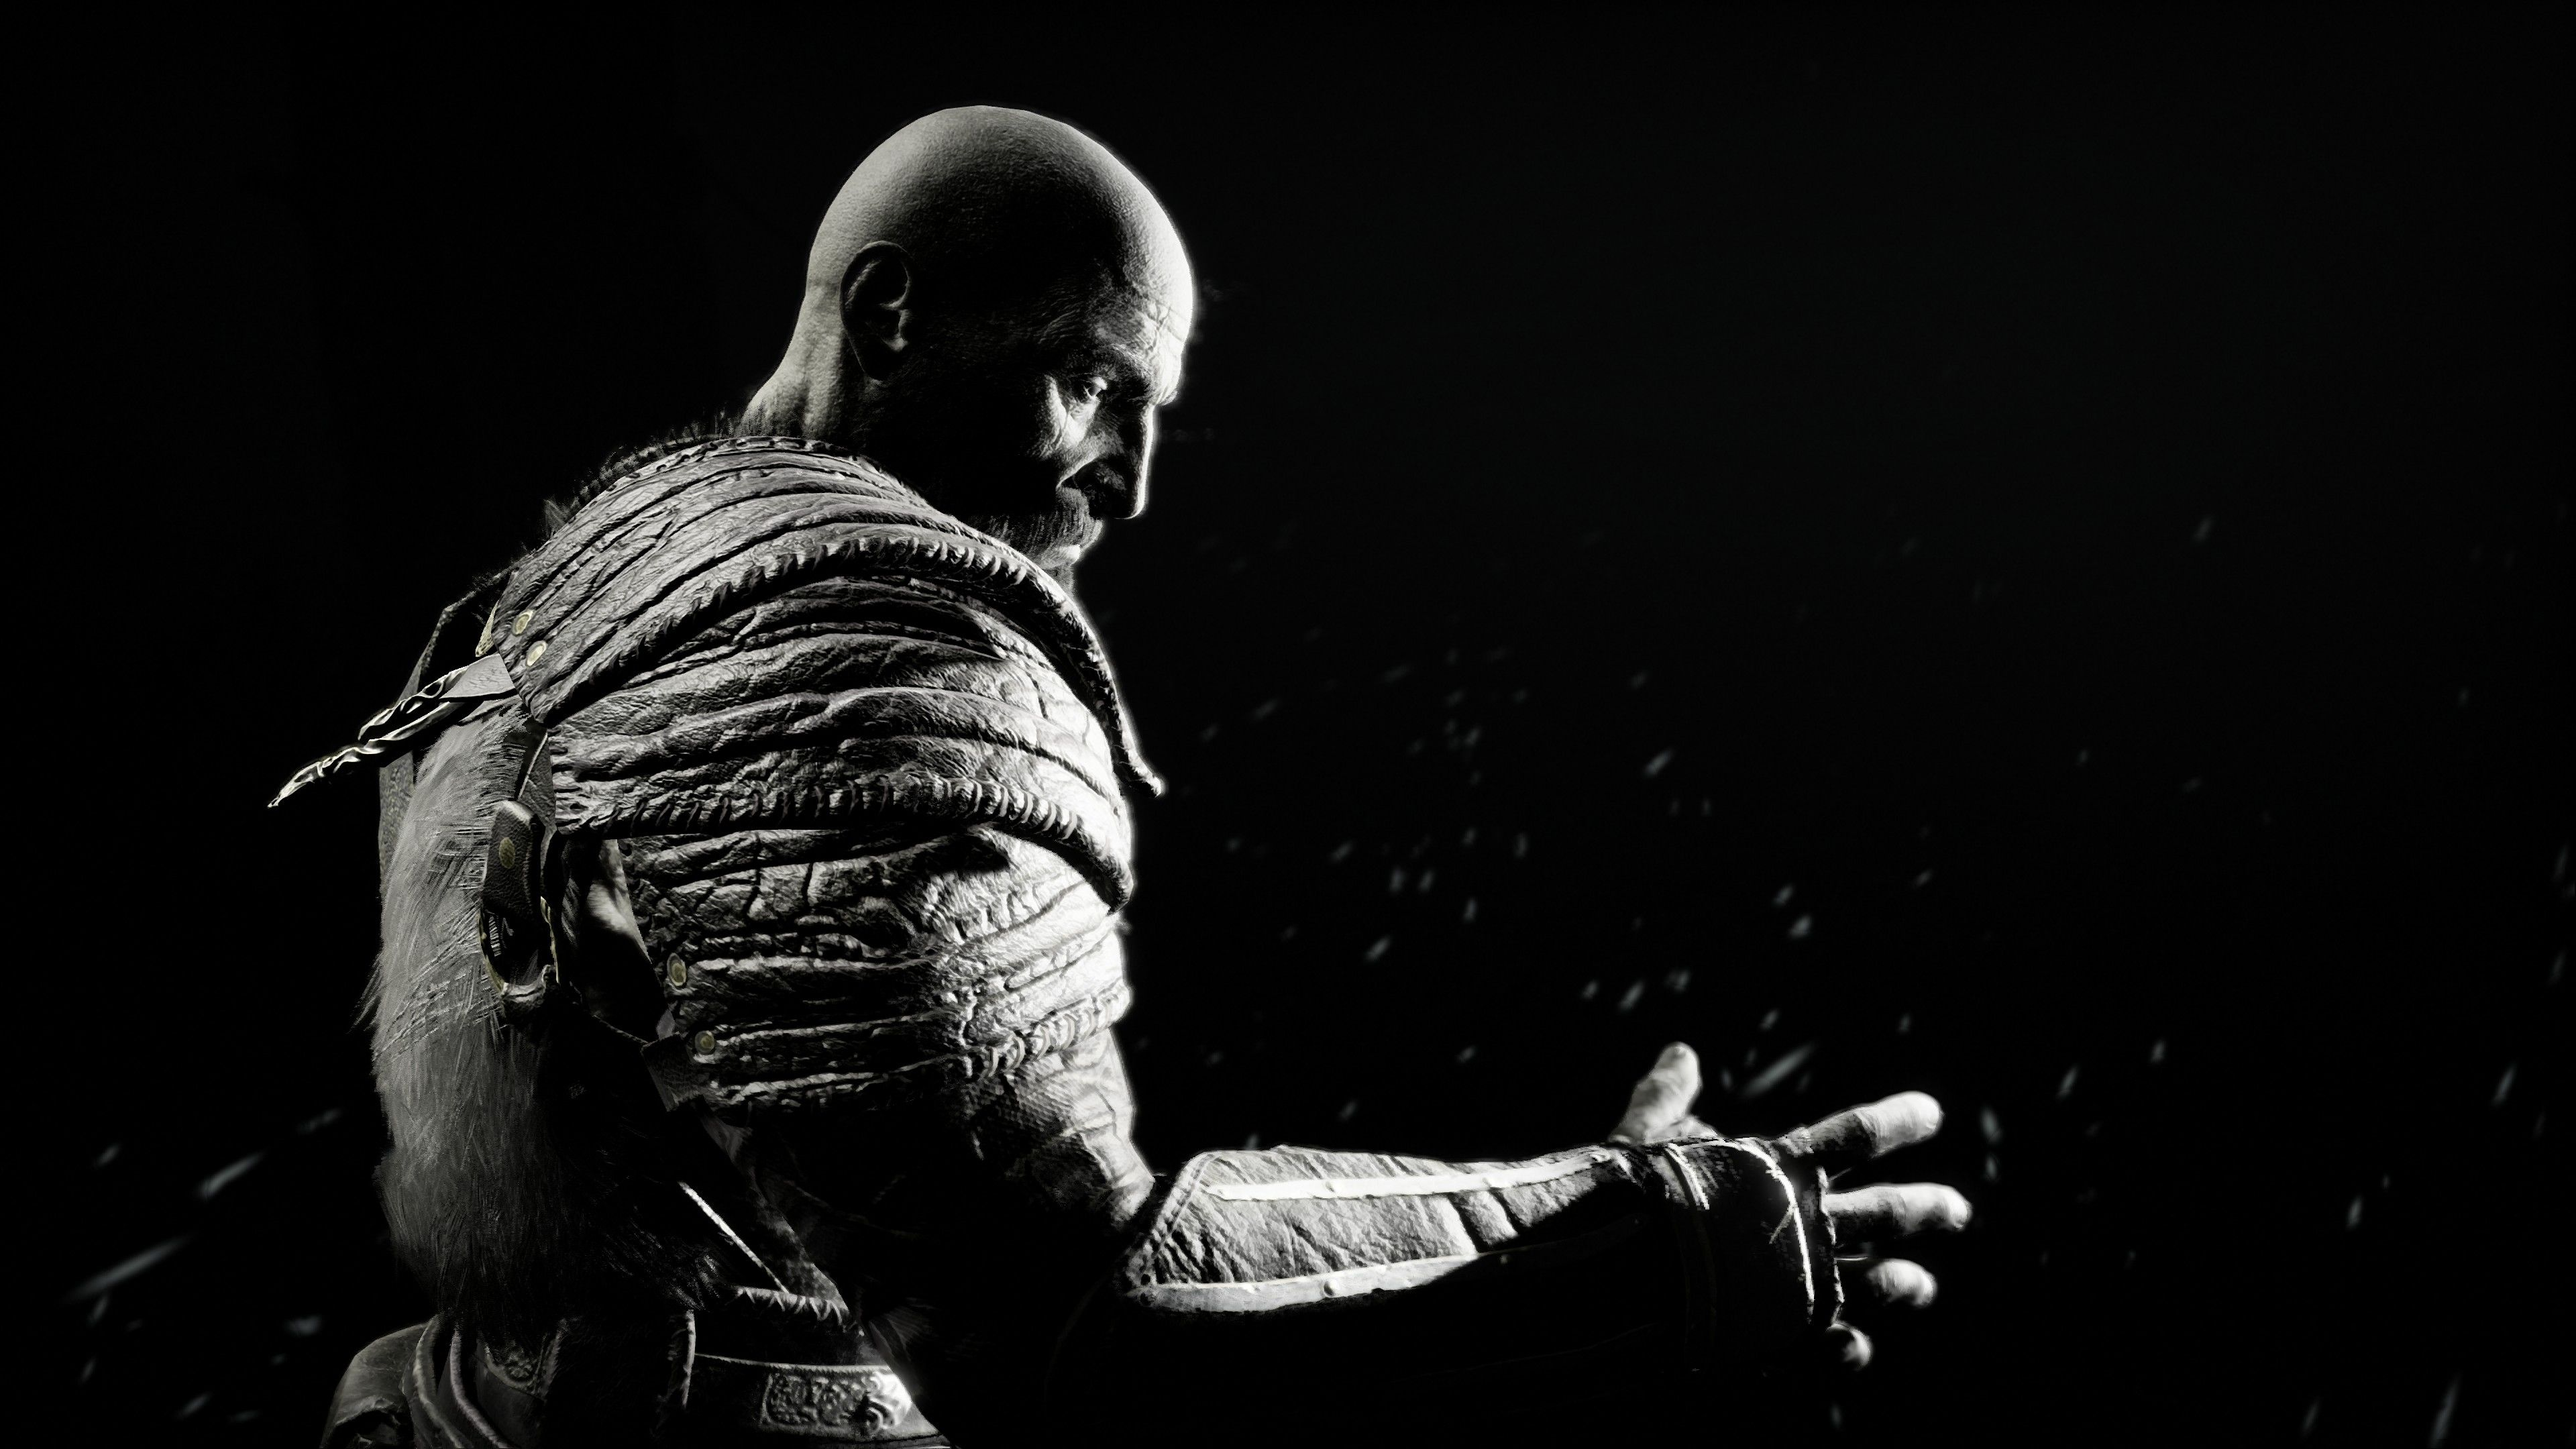 Kratos In God Of War 4k Ps Games Wallpapers Monochrome Wallpapers Kratos Wallpapers Hd Wallpapers God Of God Of War Kratos God Of War Overwatch Wallpapers